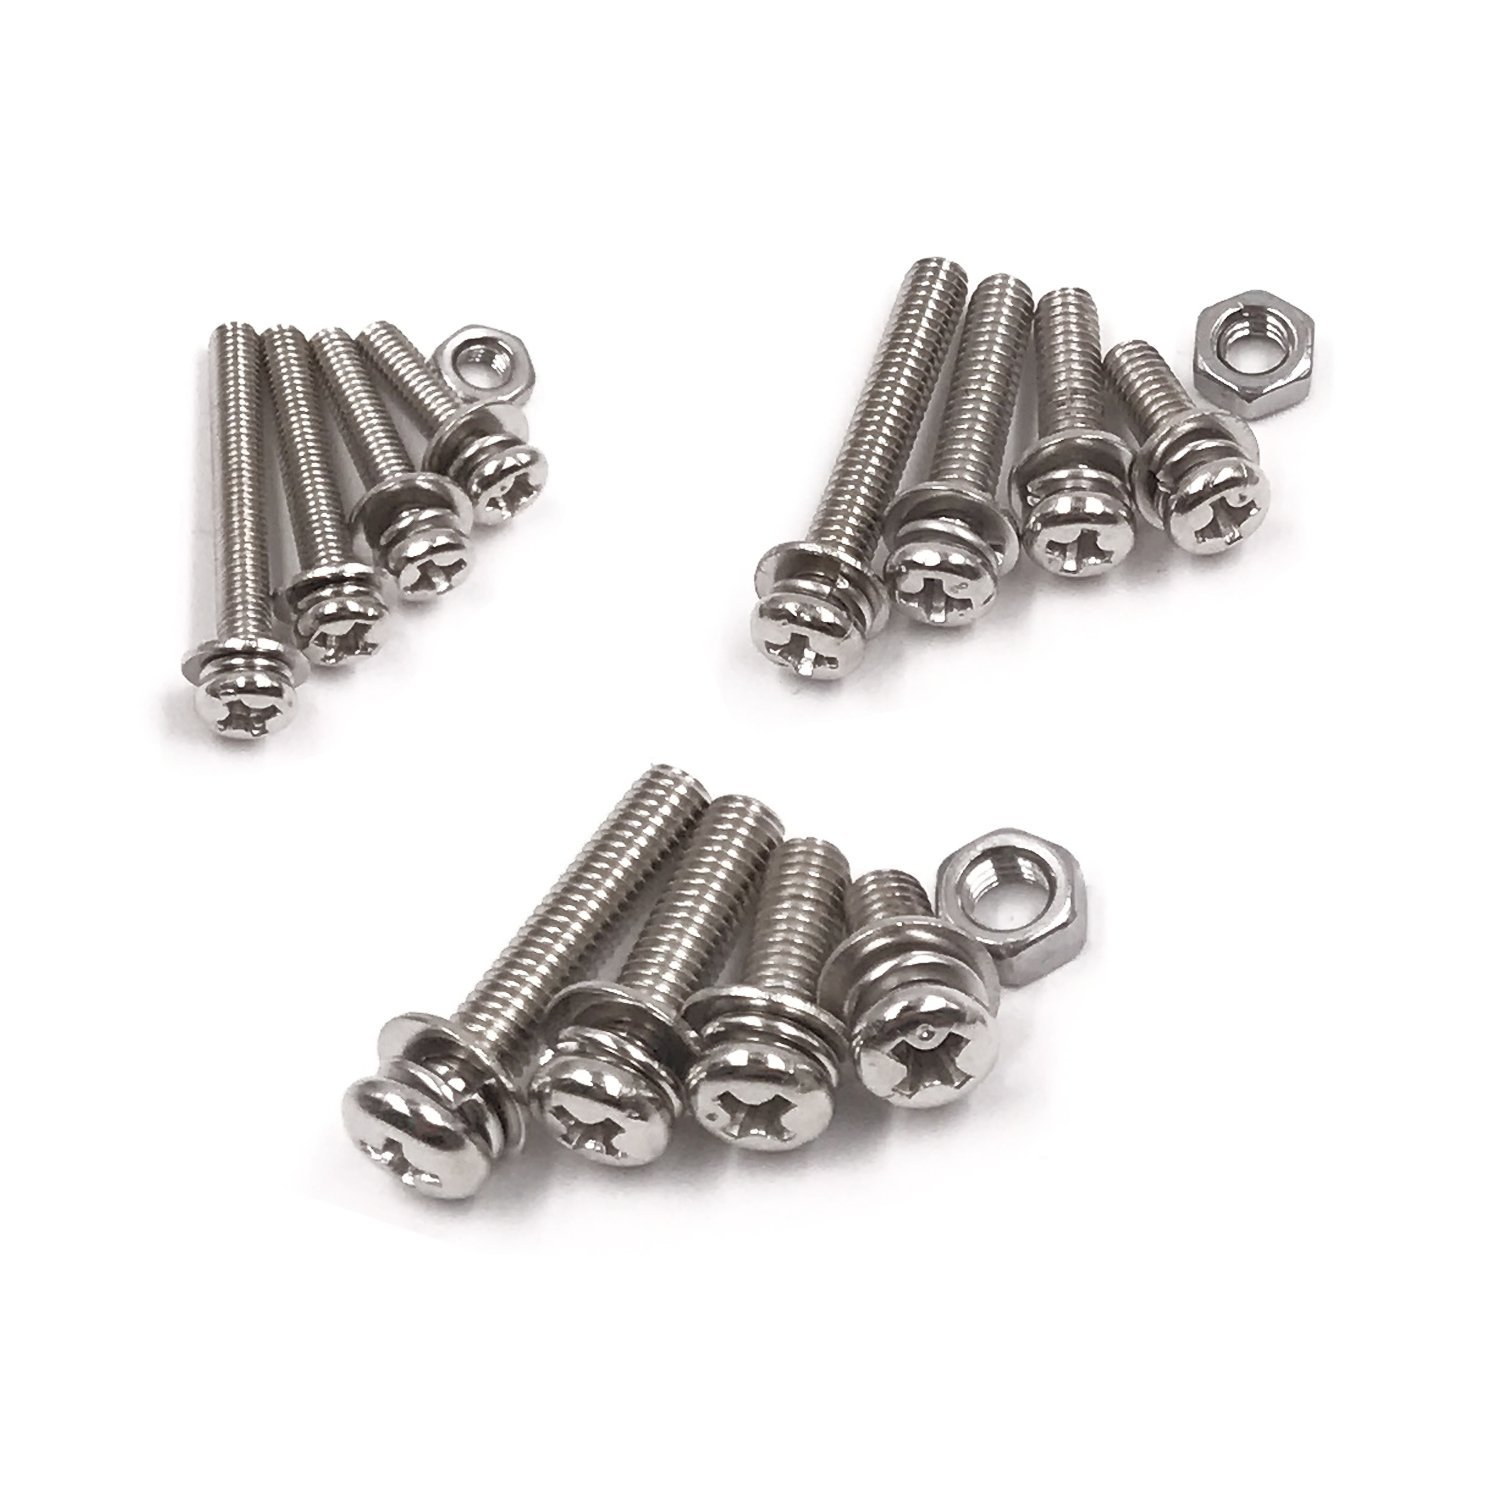 Hot sale 360-Pack 12 Sizes Phillips Pan Head Machine Screws Bolts Nuts Lock Flat Washer Assortment Kit, Carbon Steel, M3 M4 M5 creativity street wiggle eyes assortment assorted sizes black 100 pack